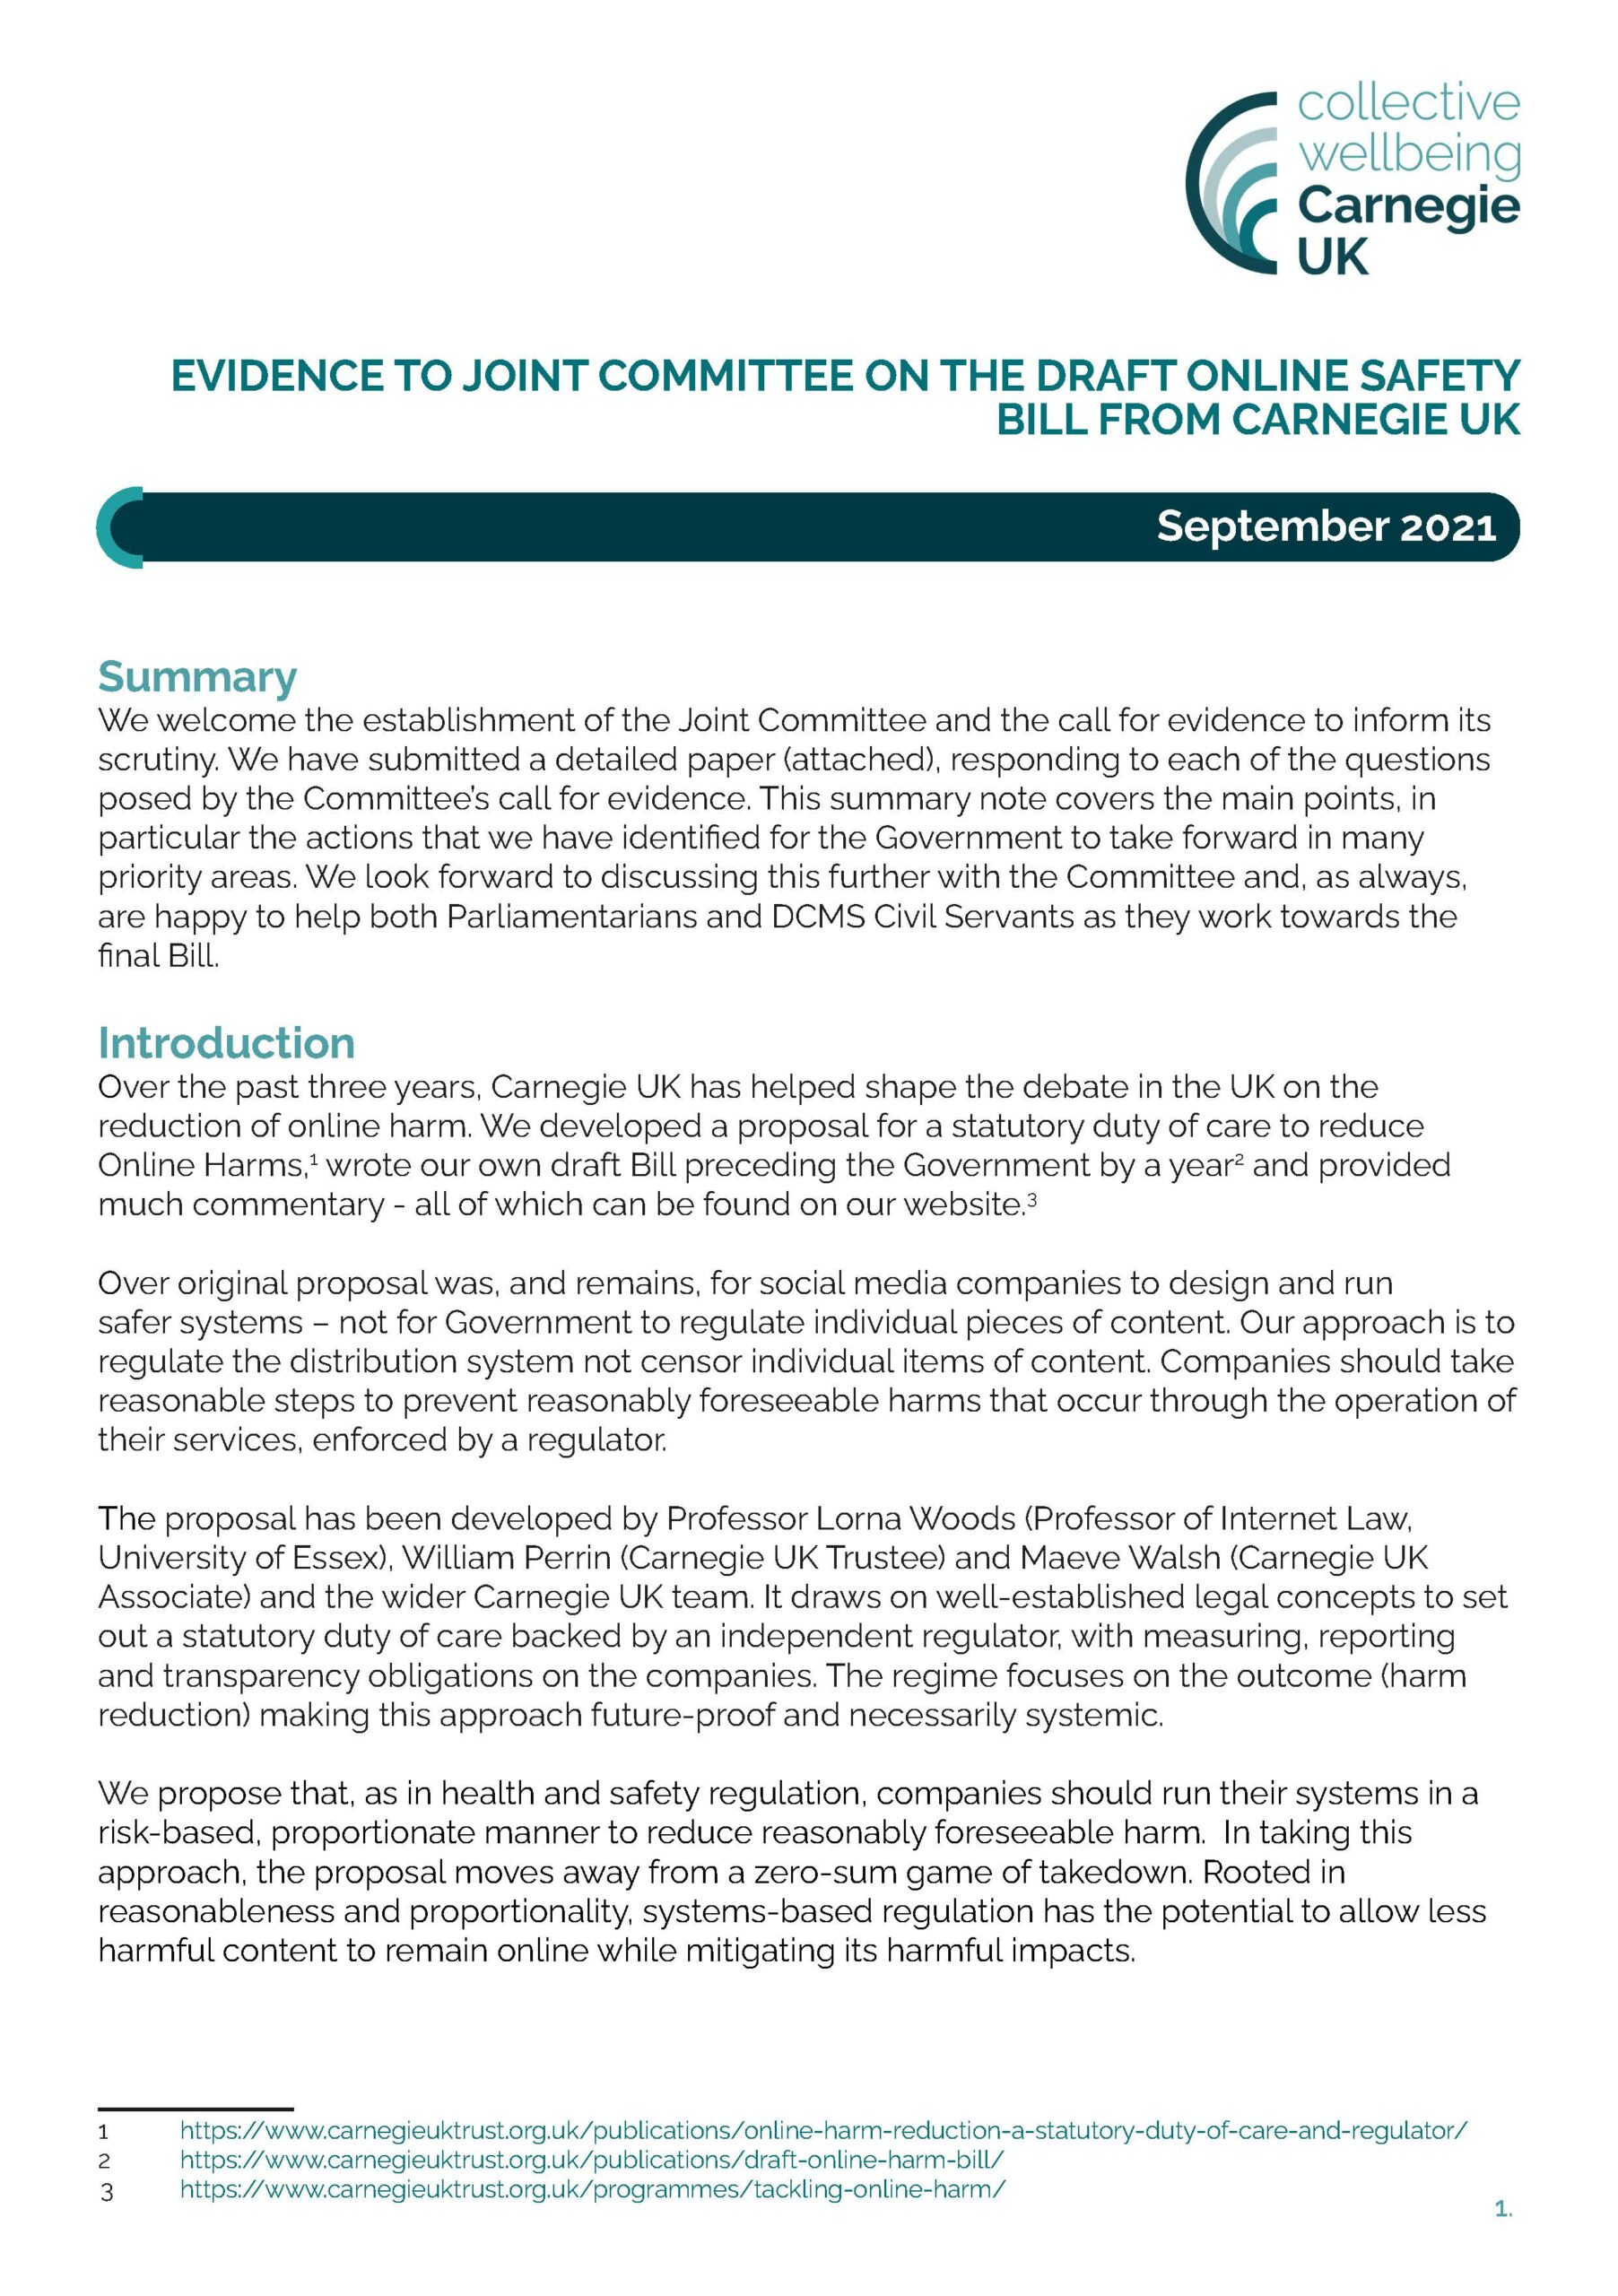 Evidence to Joint Committee on the draft online safety bill